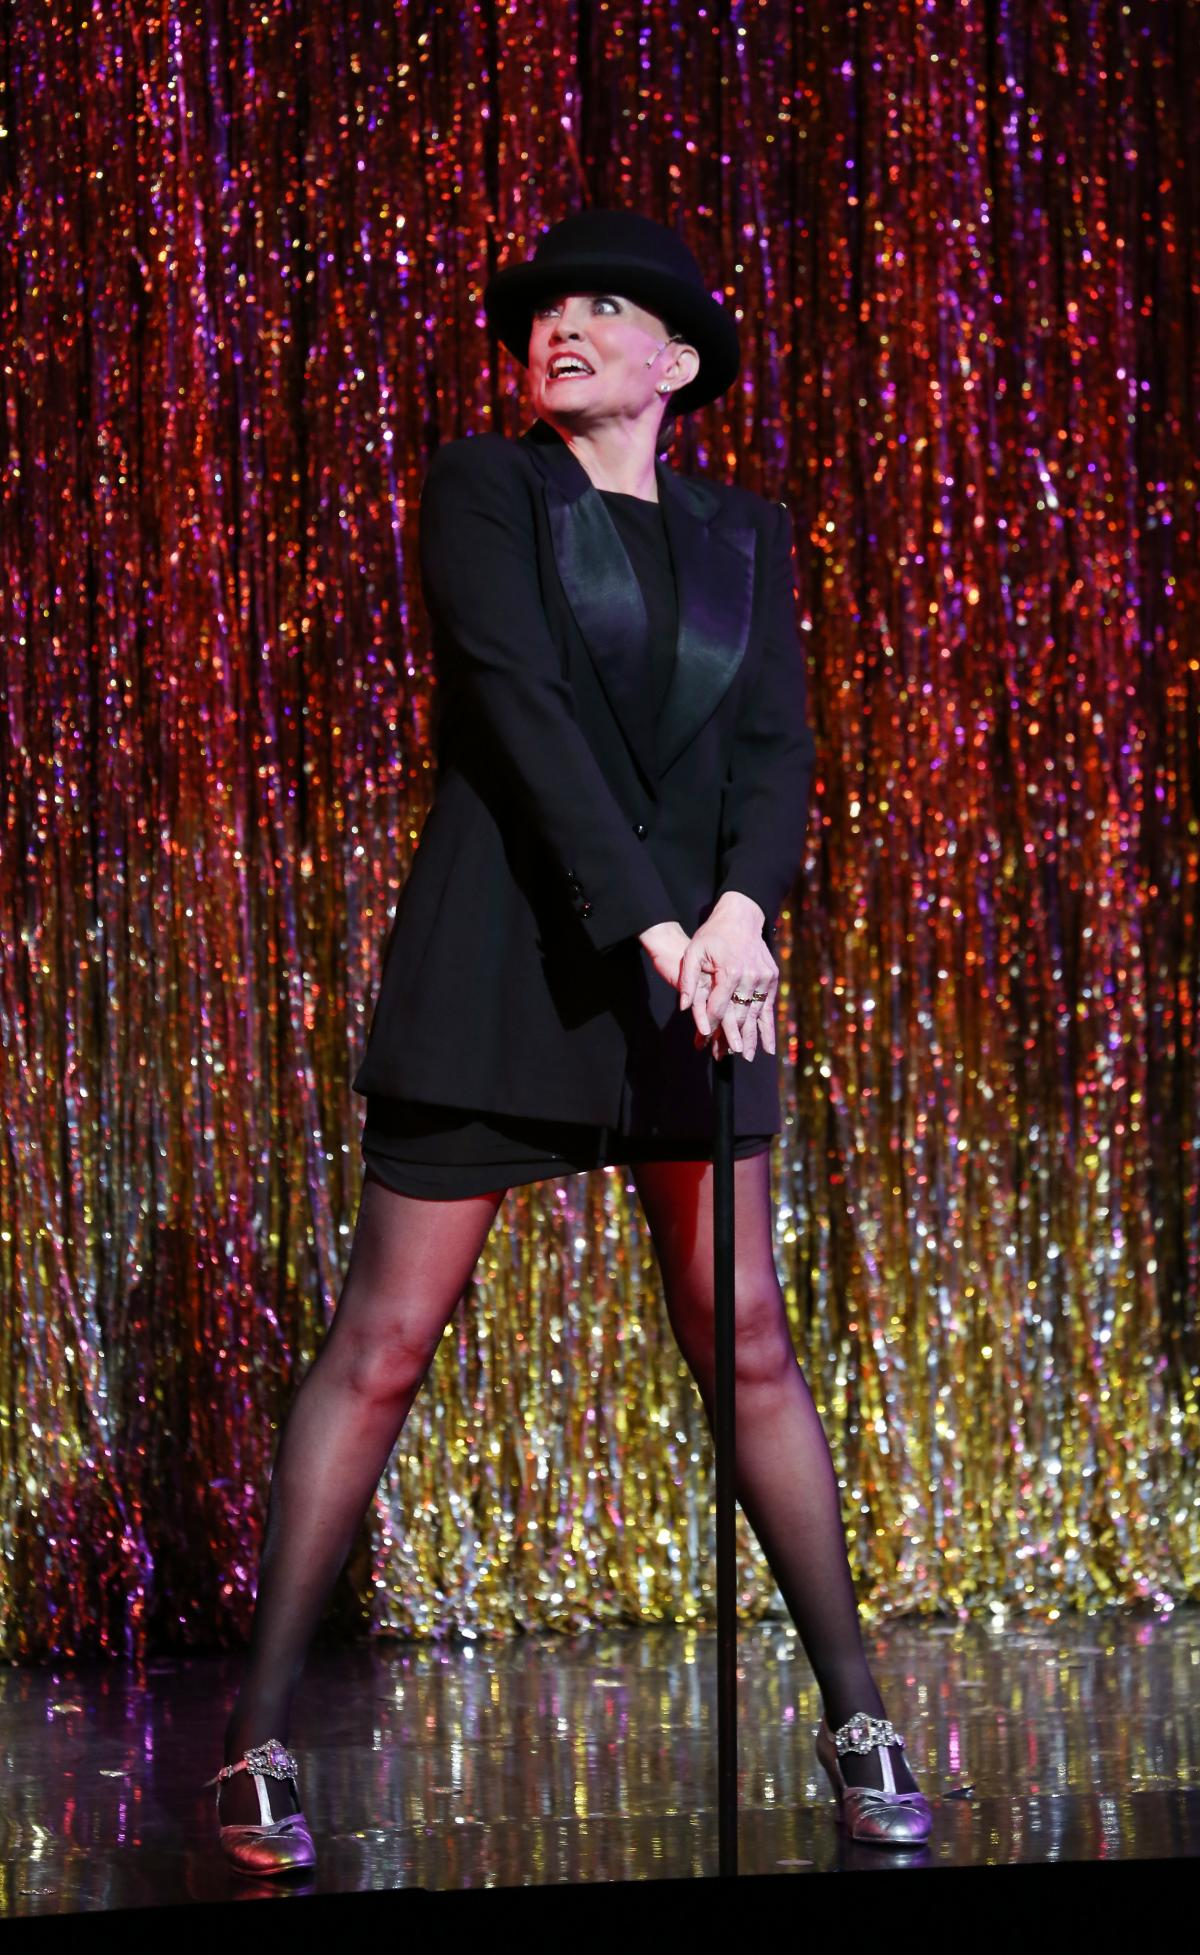 The actress, dancer and choreographer is pictured during a performance of Chicago as it became the second longest running show in Broadway history in 2014 in New York City.